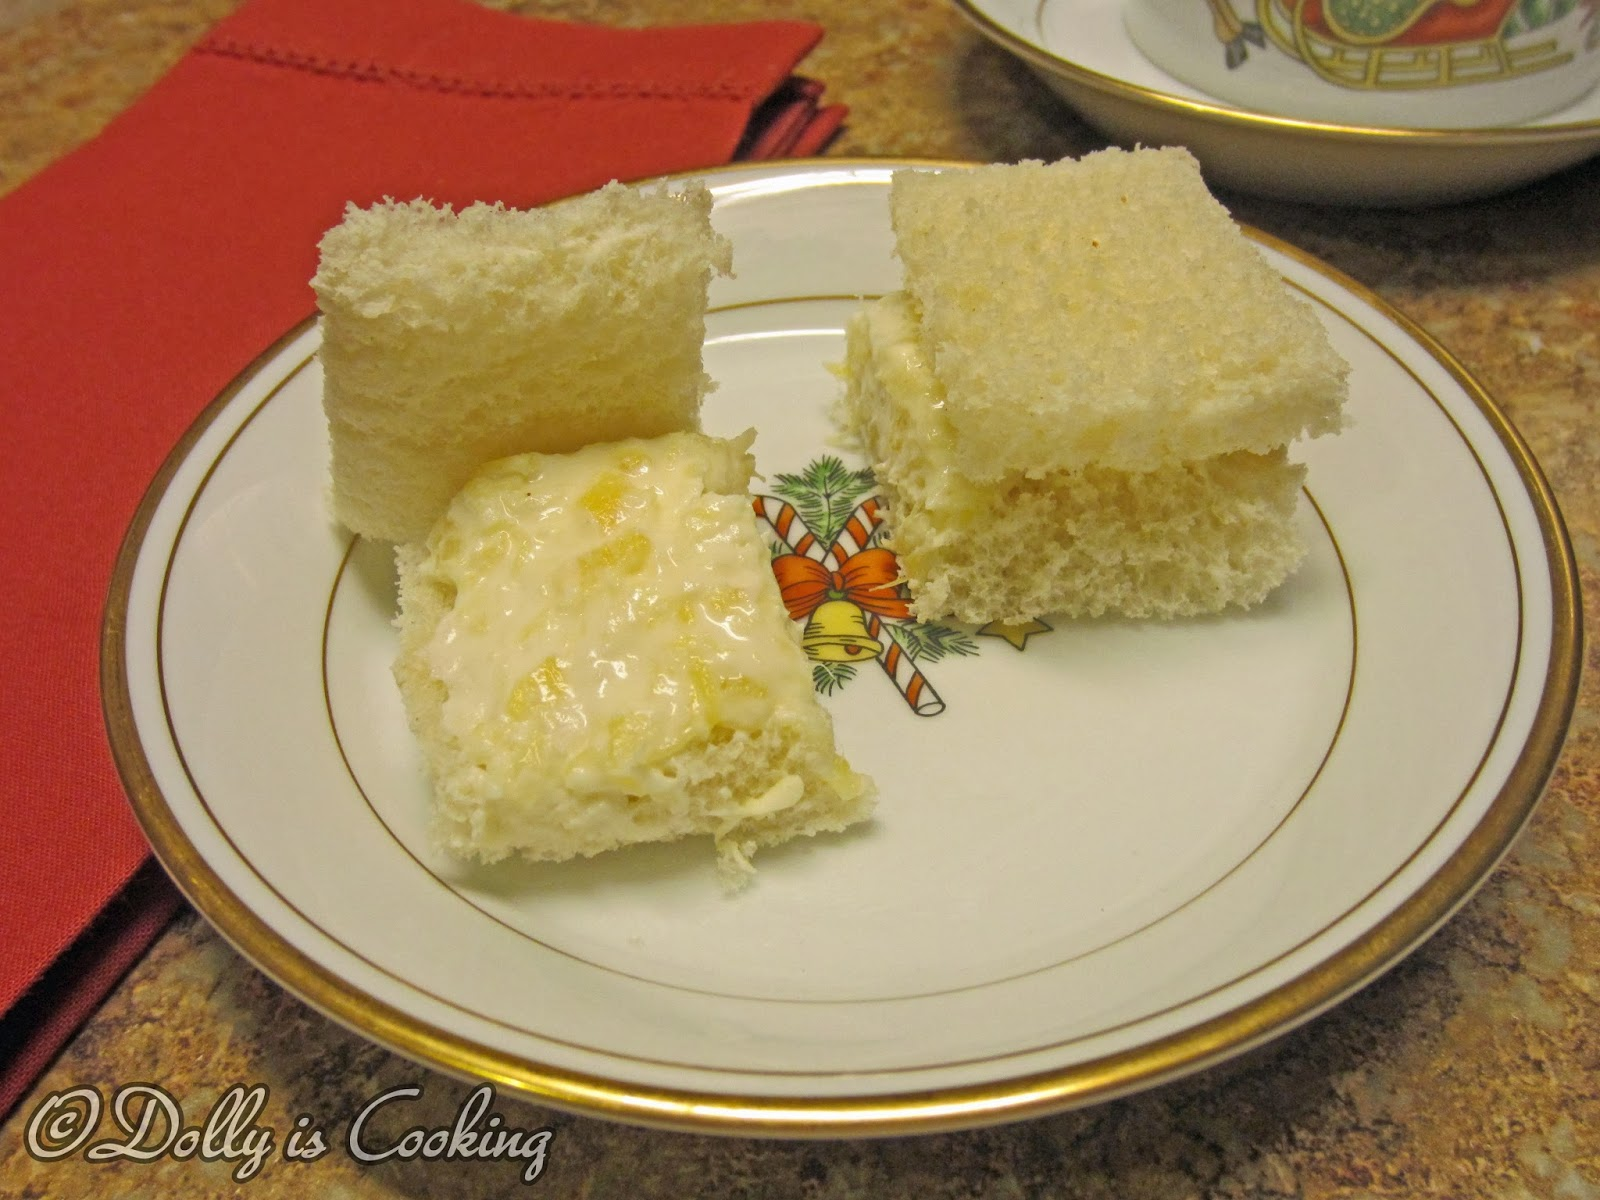 Dolly Is Cooking: Cream Cheese and Pineapple Finger Sandwiches